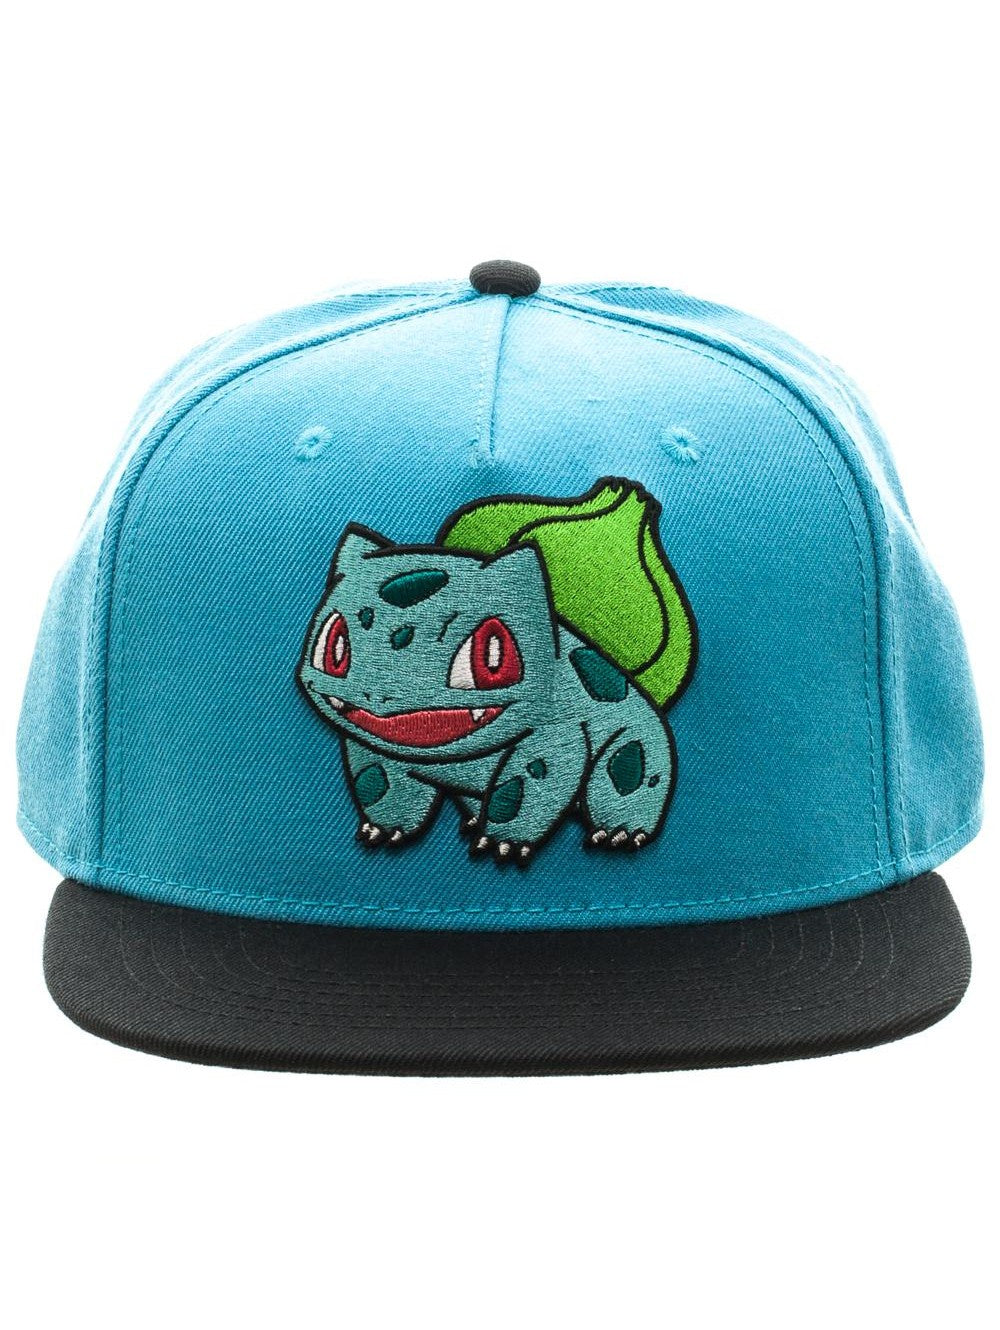 POKEMON - BULBASAUR - Colour Block Snapback